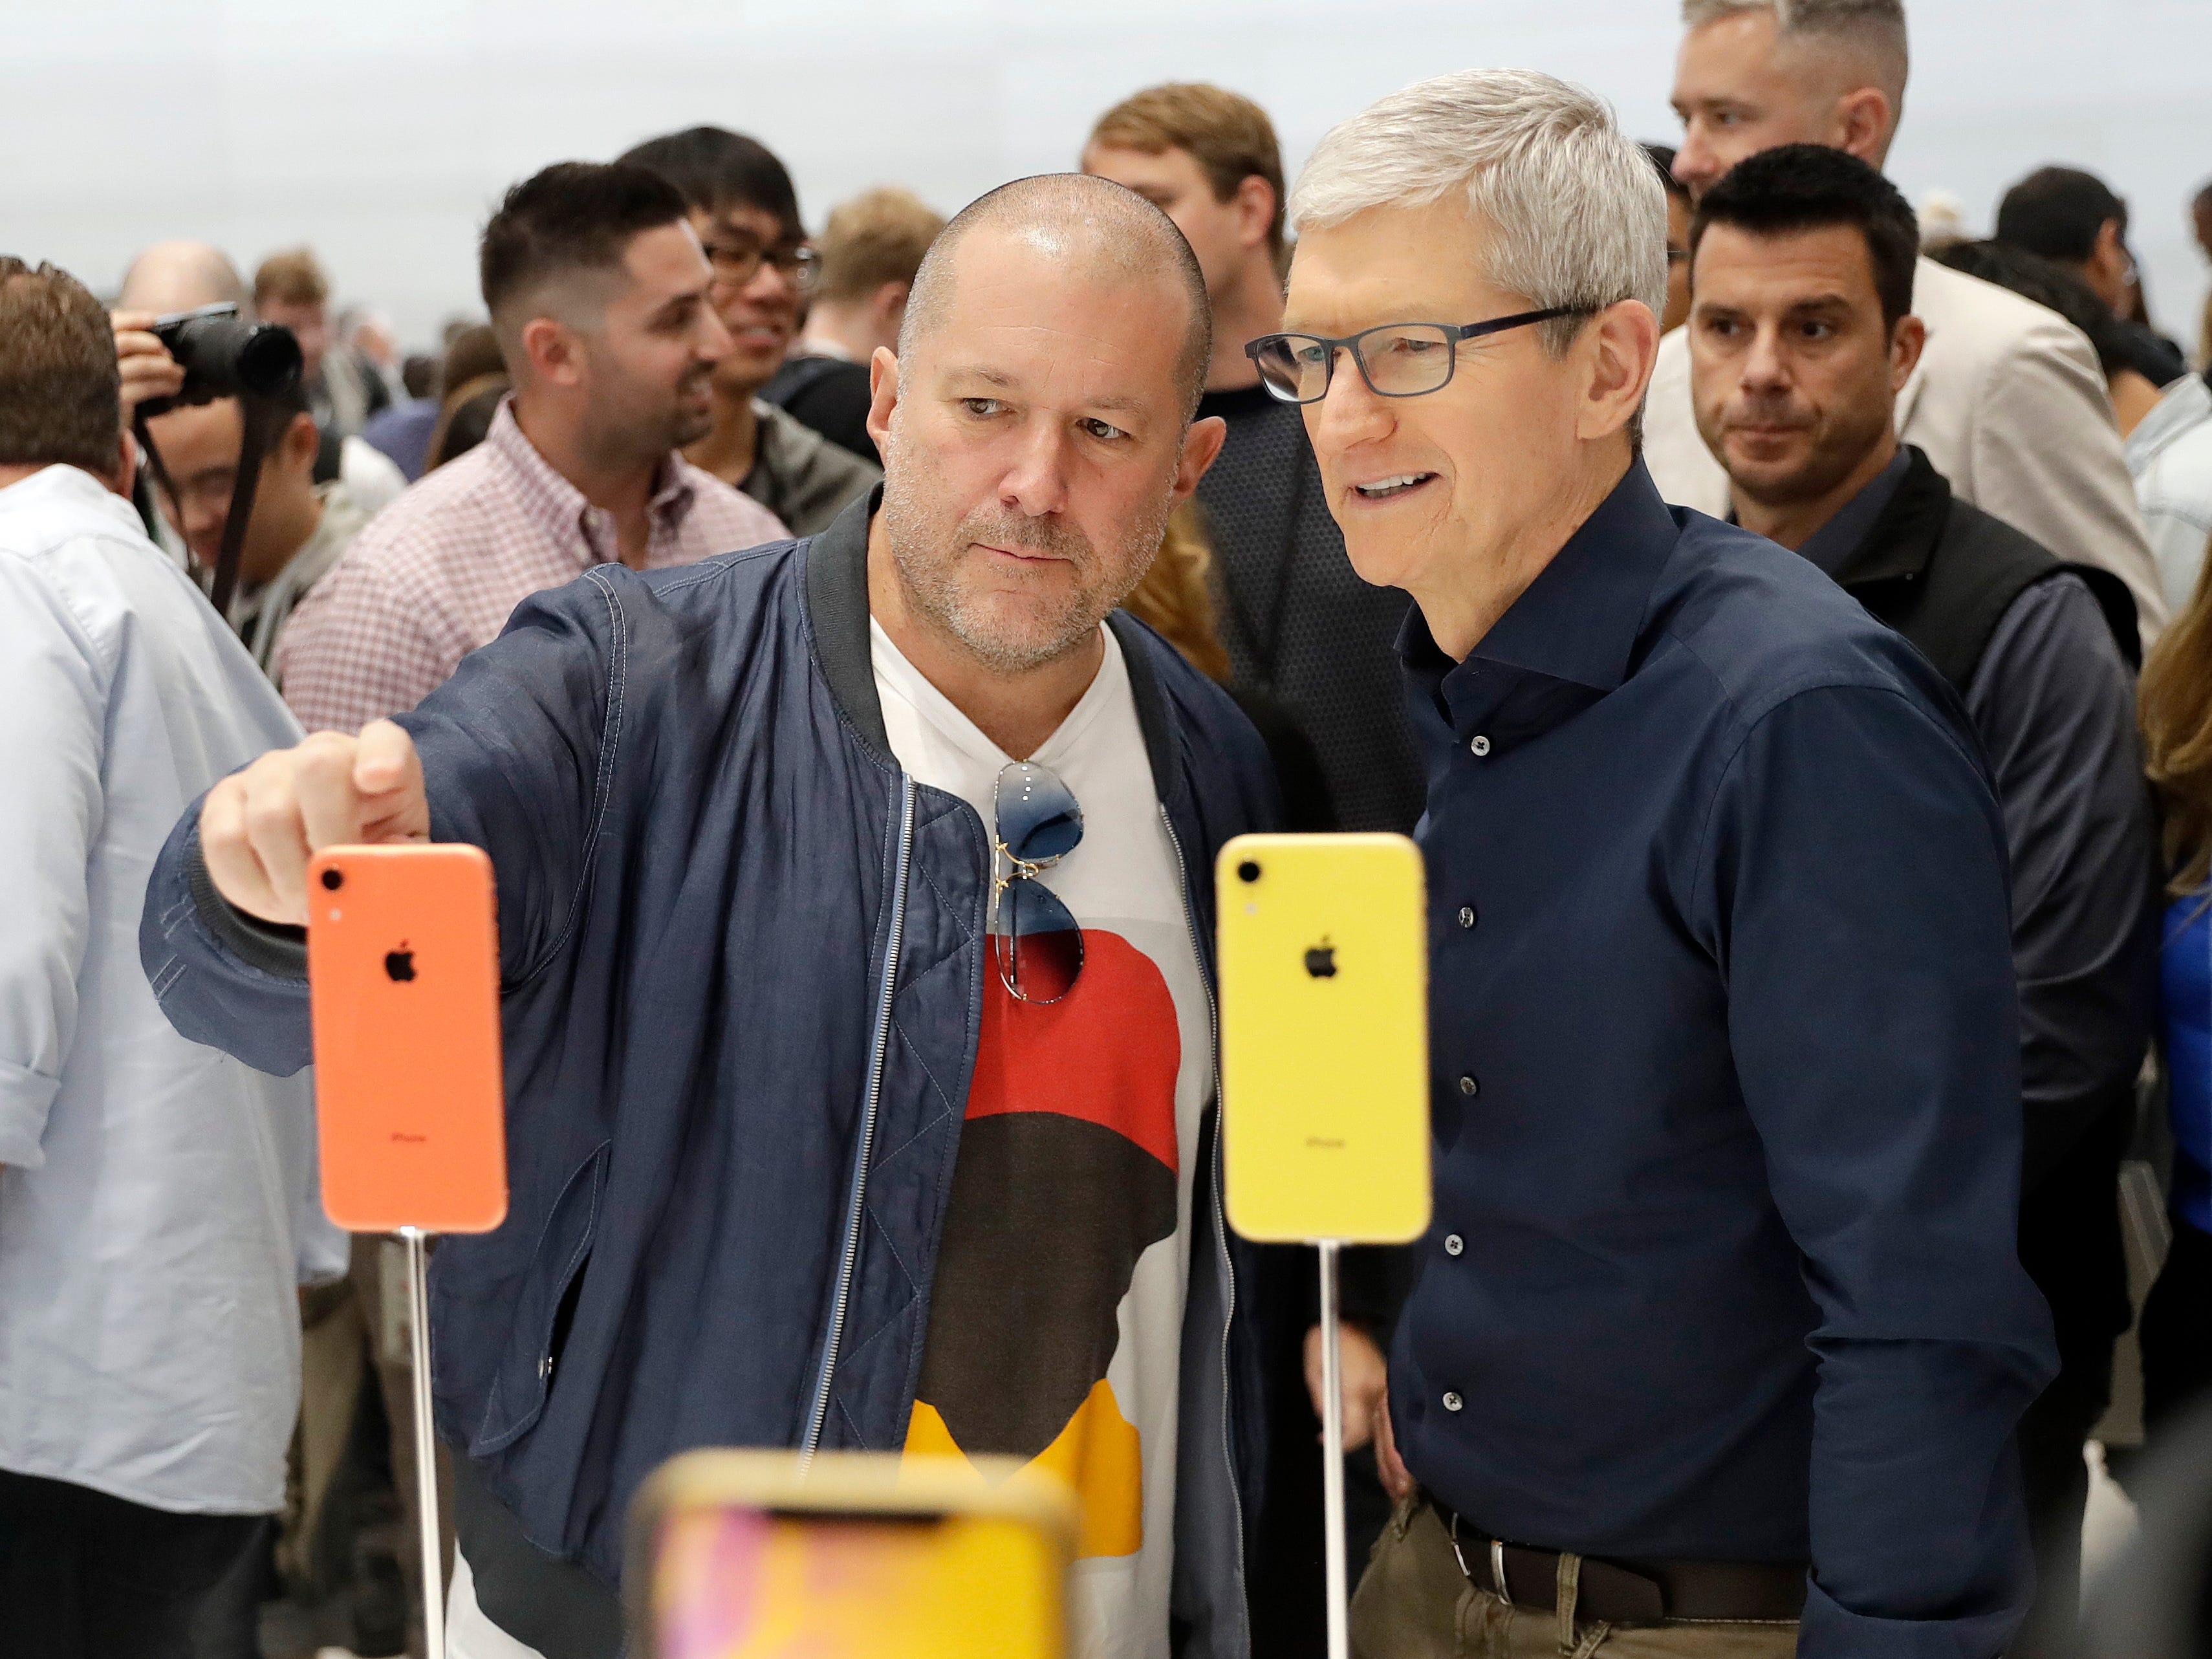 Jonathan Ive, Apple's chief design officer, left, looks at some new iPhone models with CEO Tim Cook during an event to announce new products Wednesday, Sept. 12, 2018, in Cupertino, Calif.